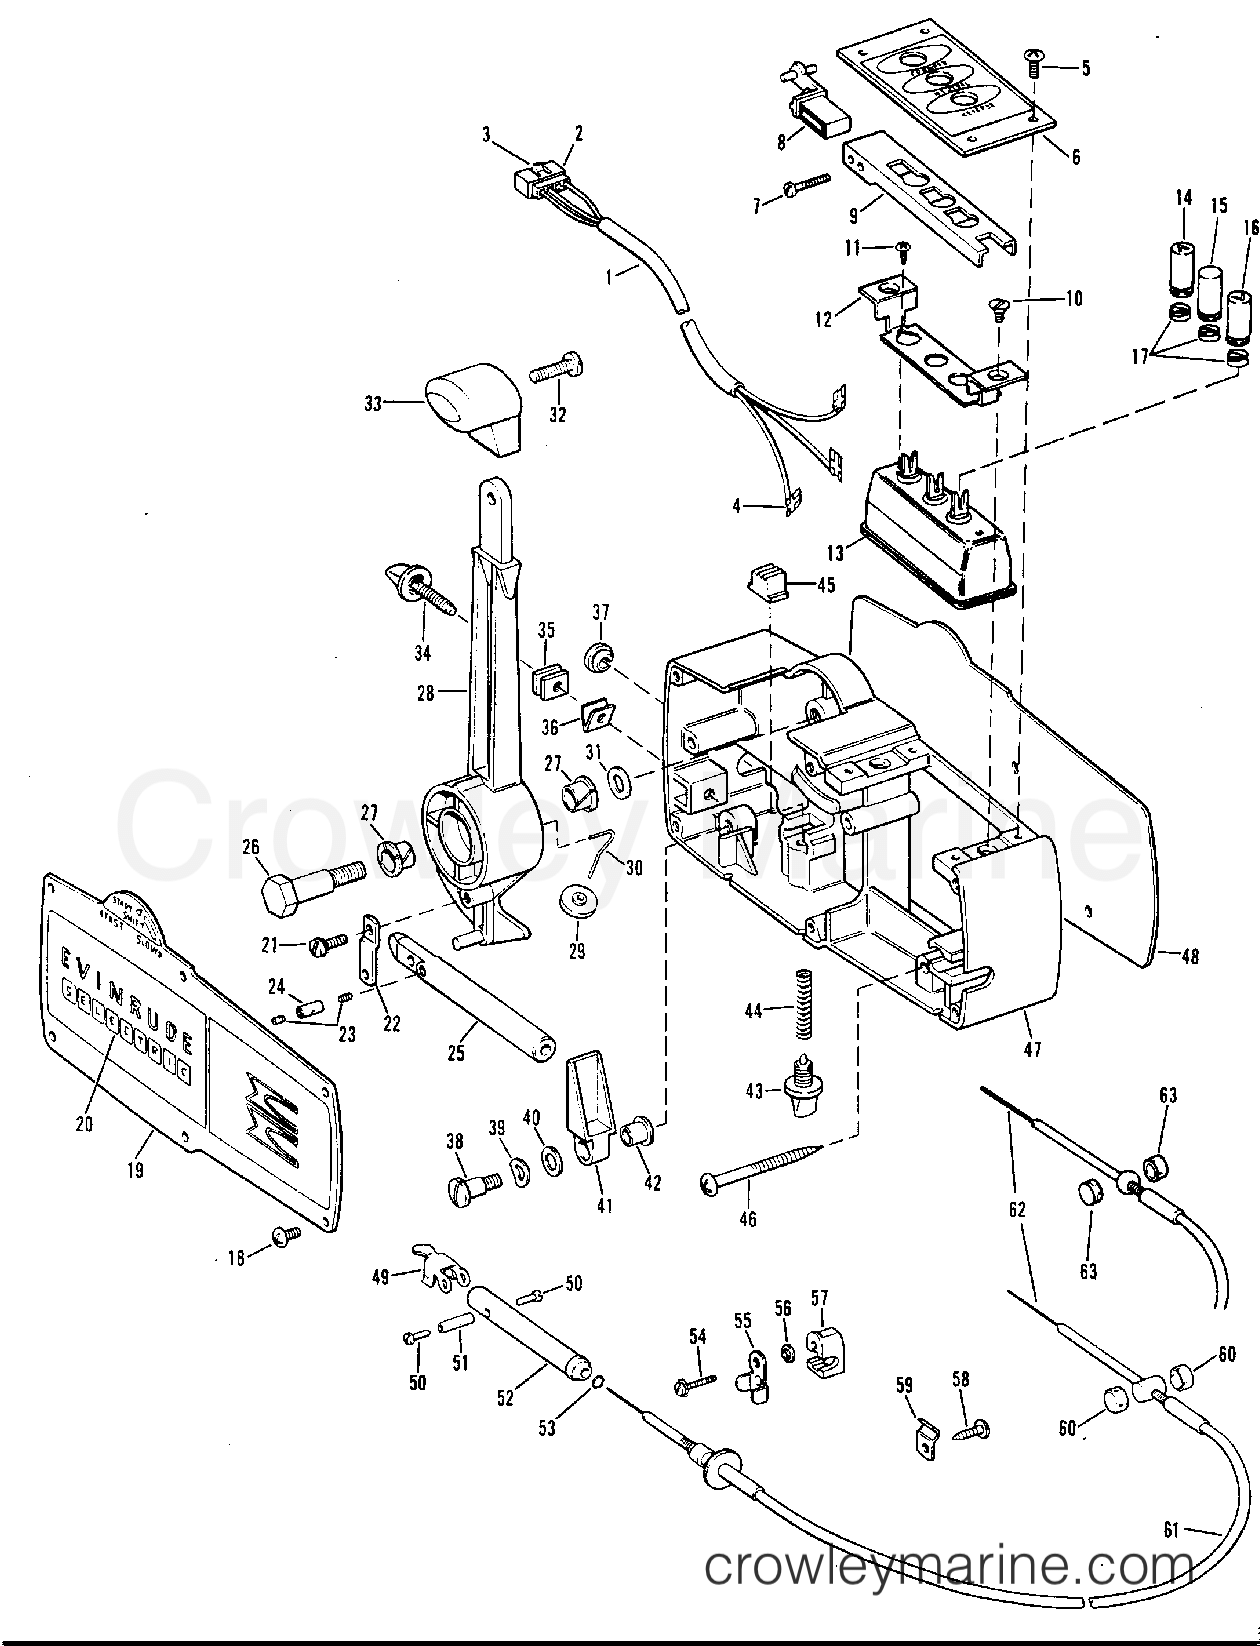 omc shifter diagram  omc  free engine image for user